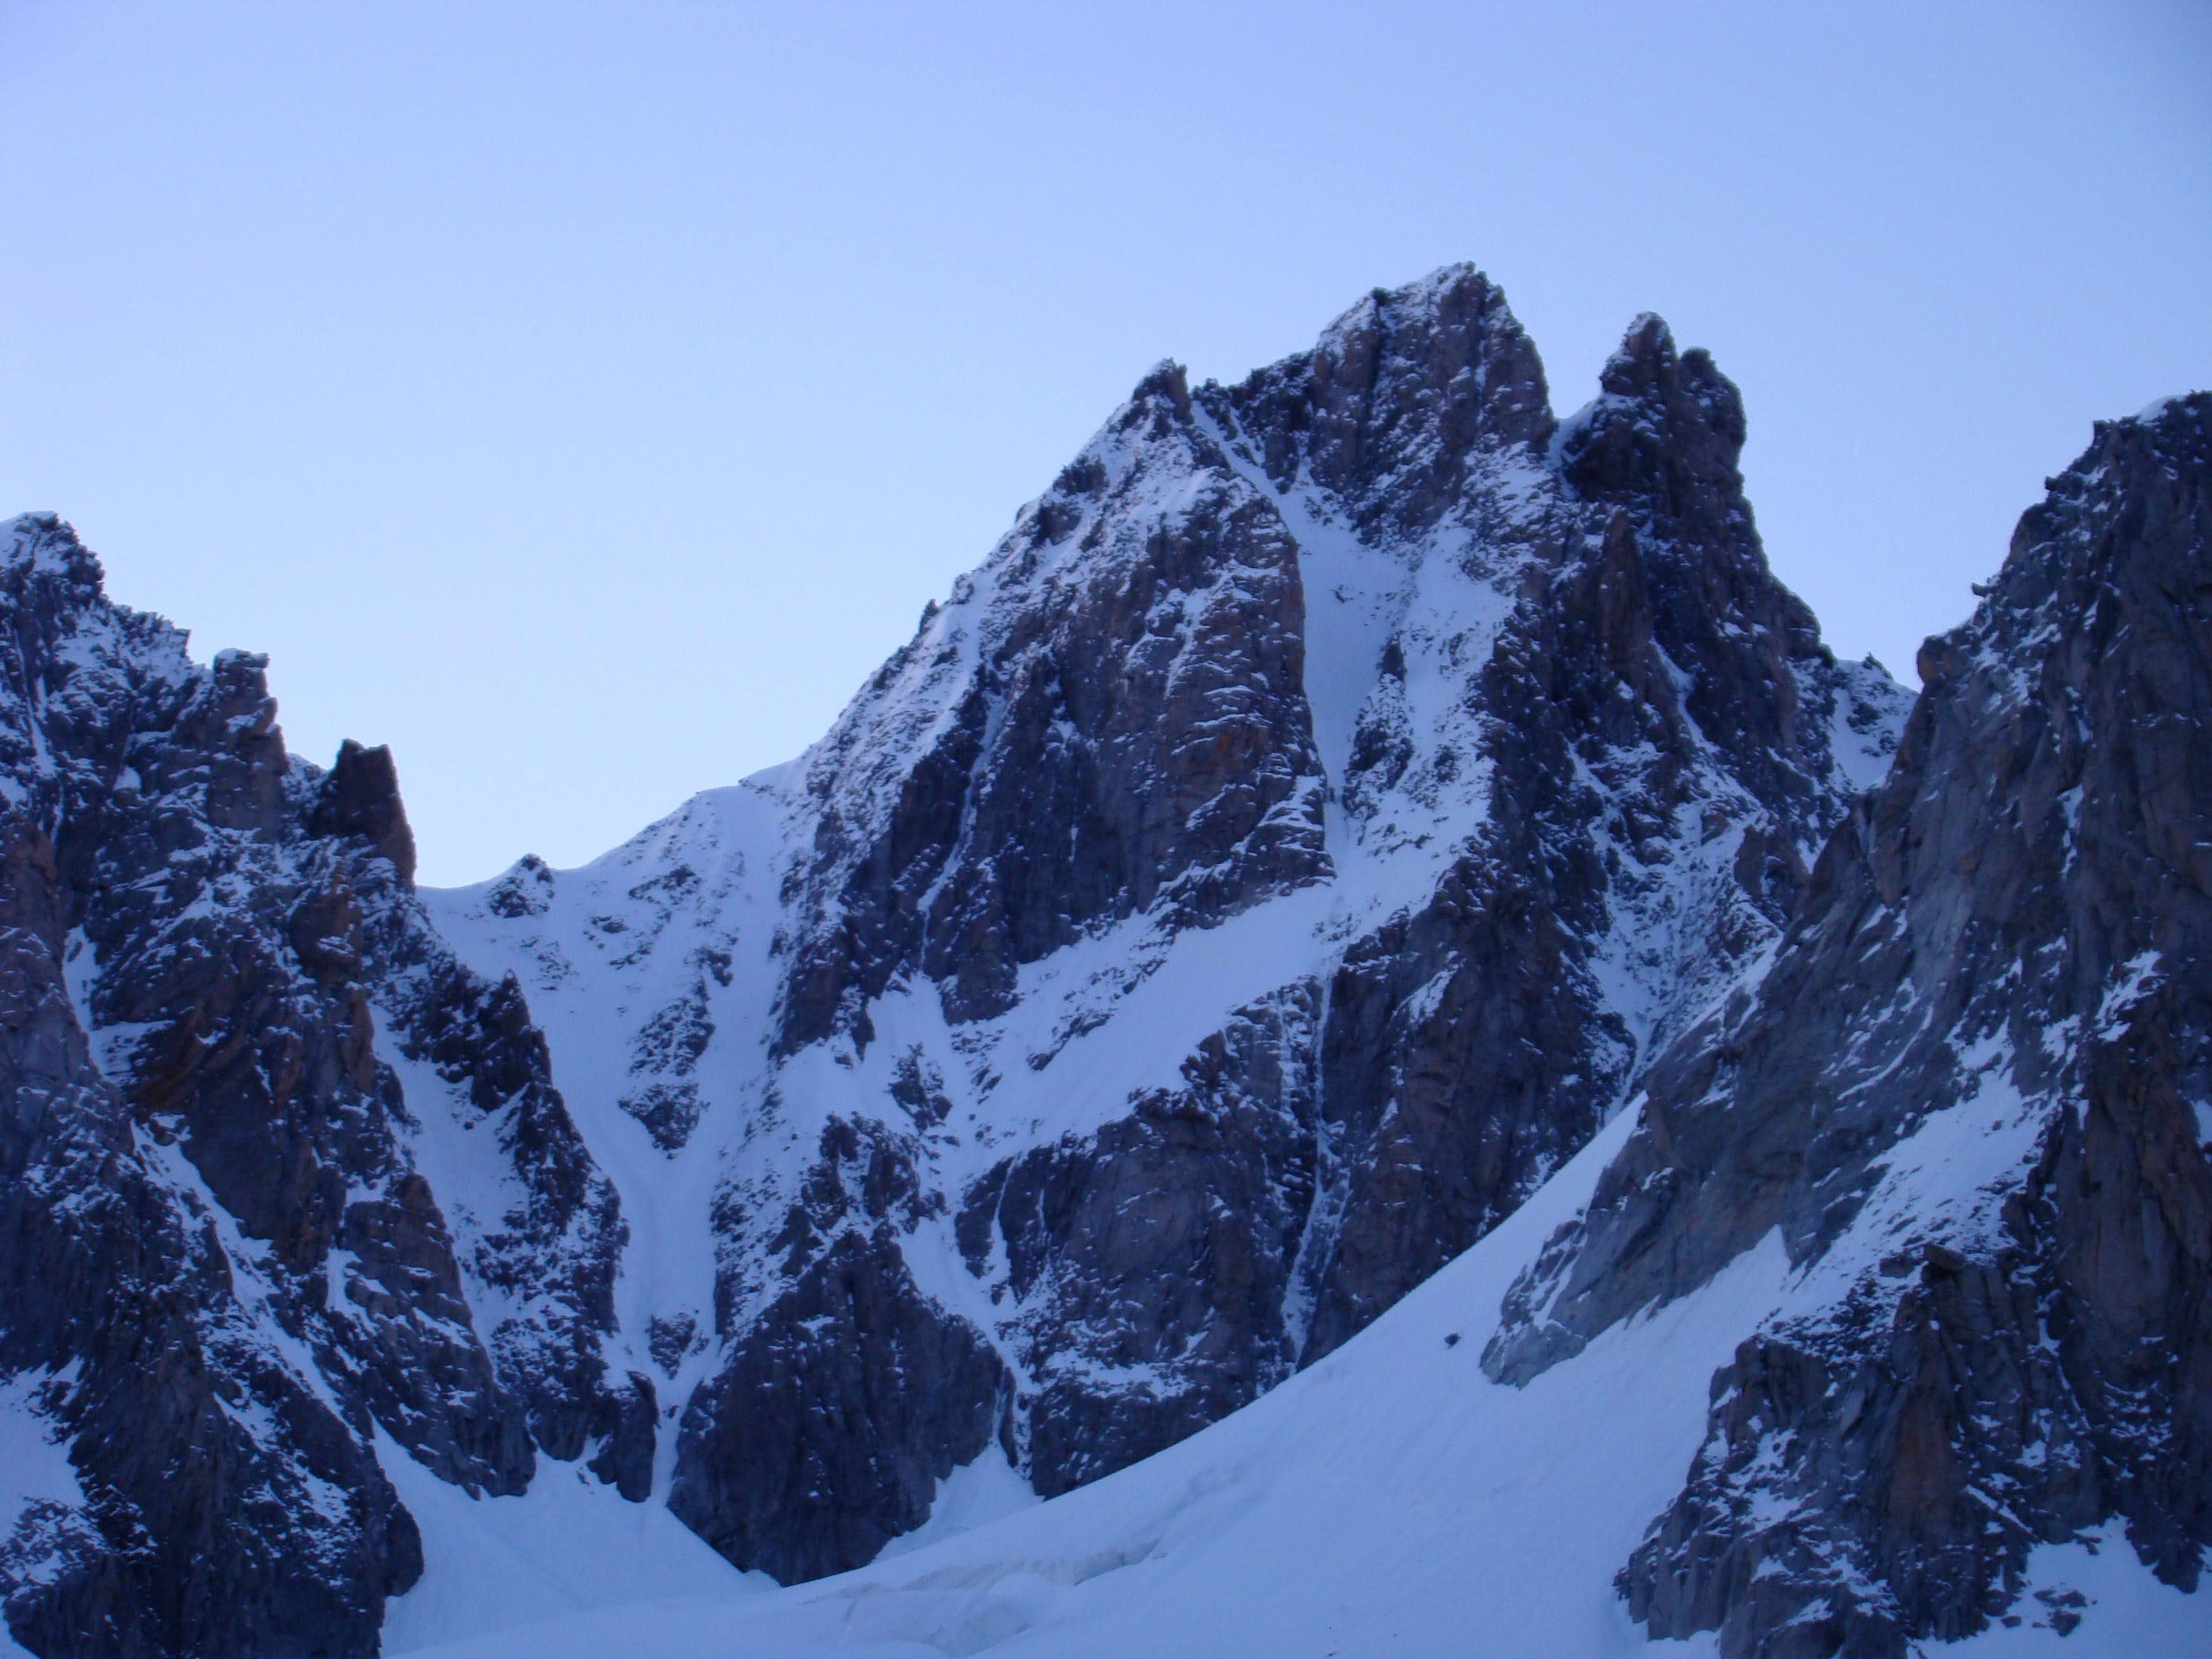 West couloir of Le Tour Noir